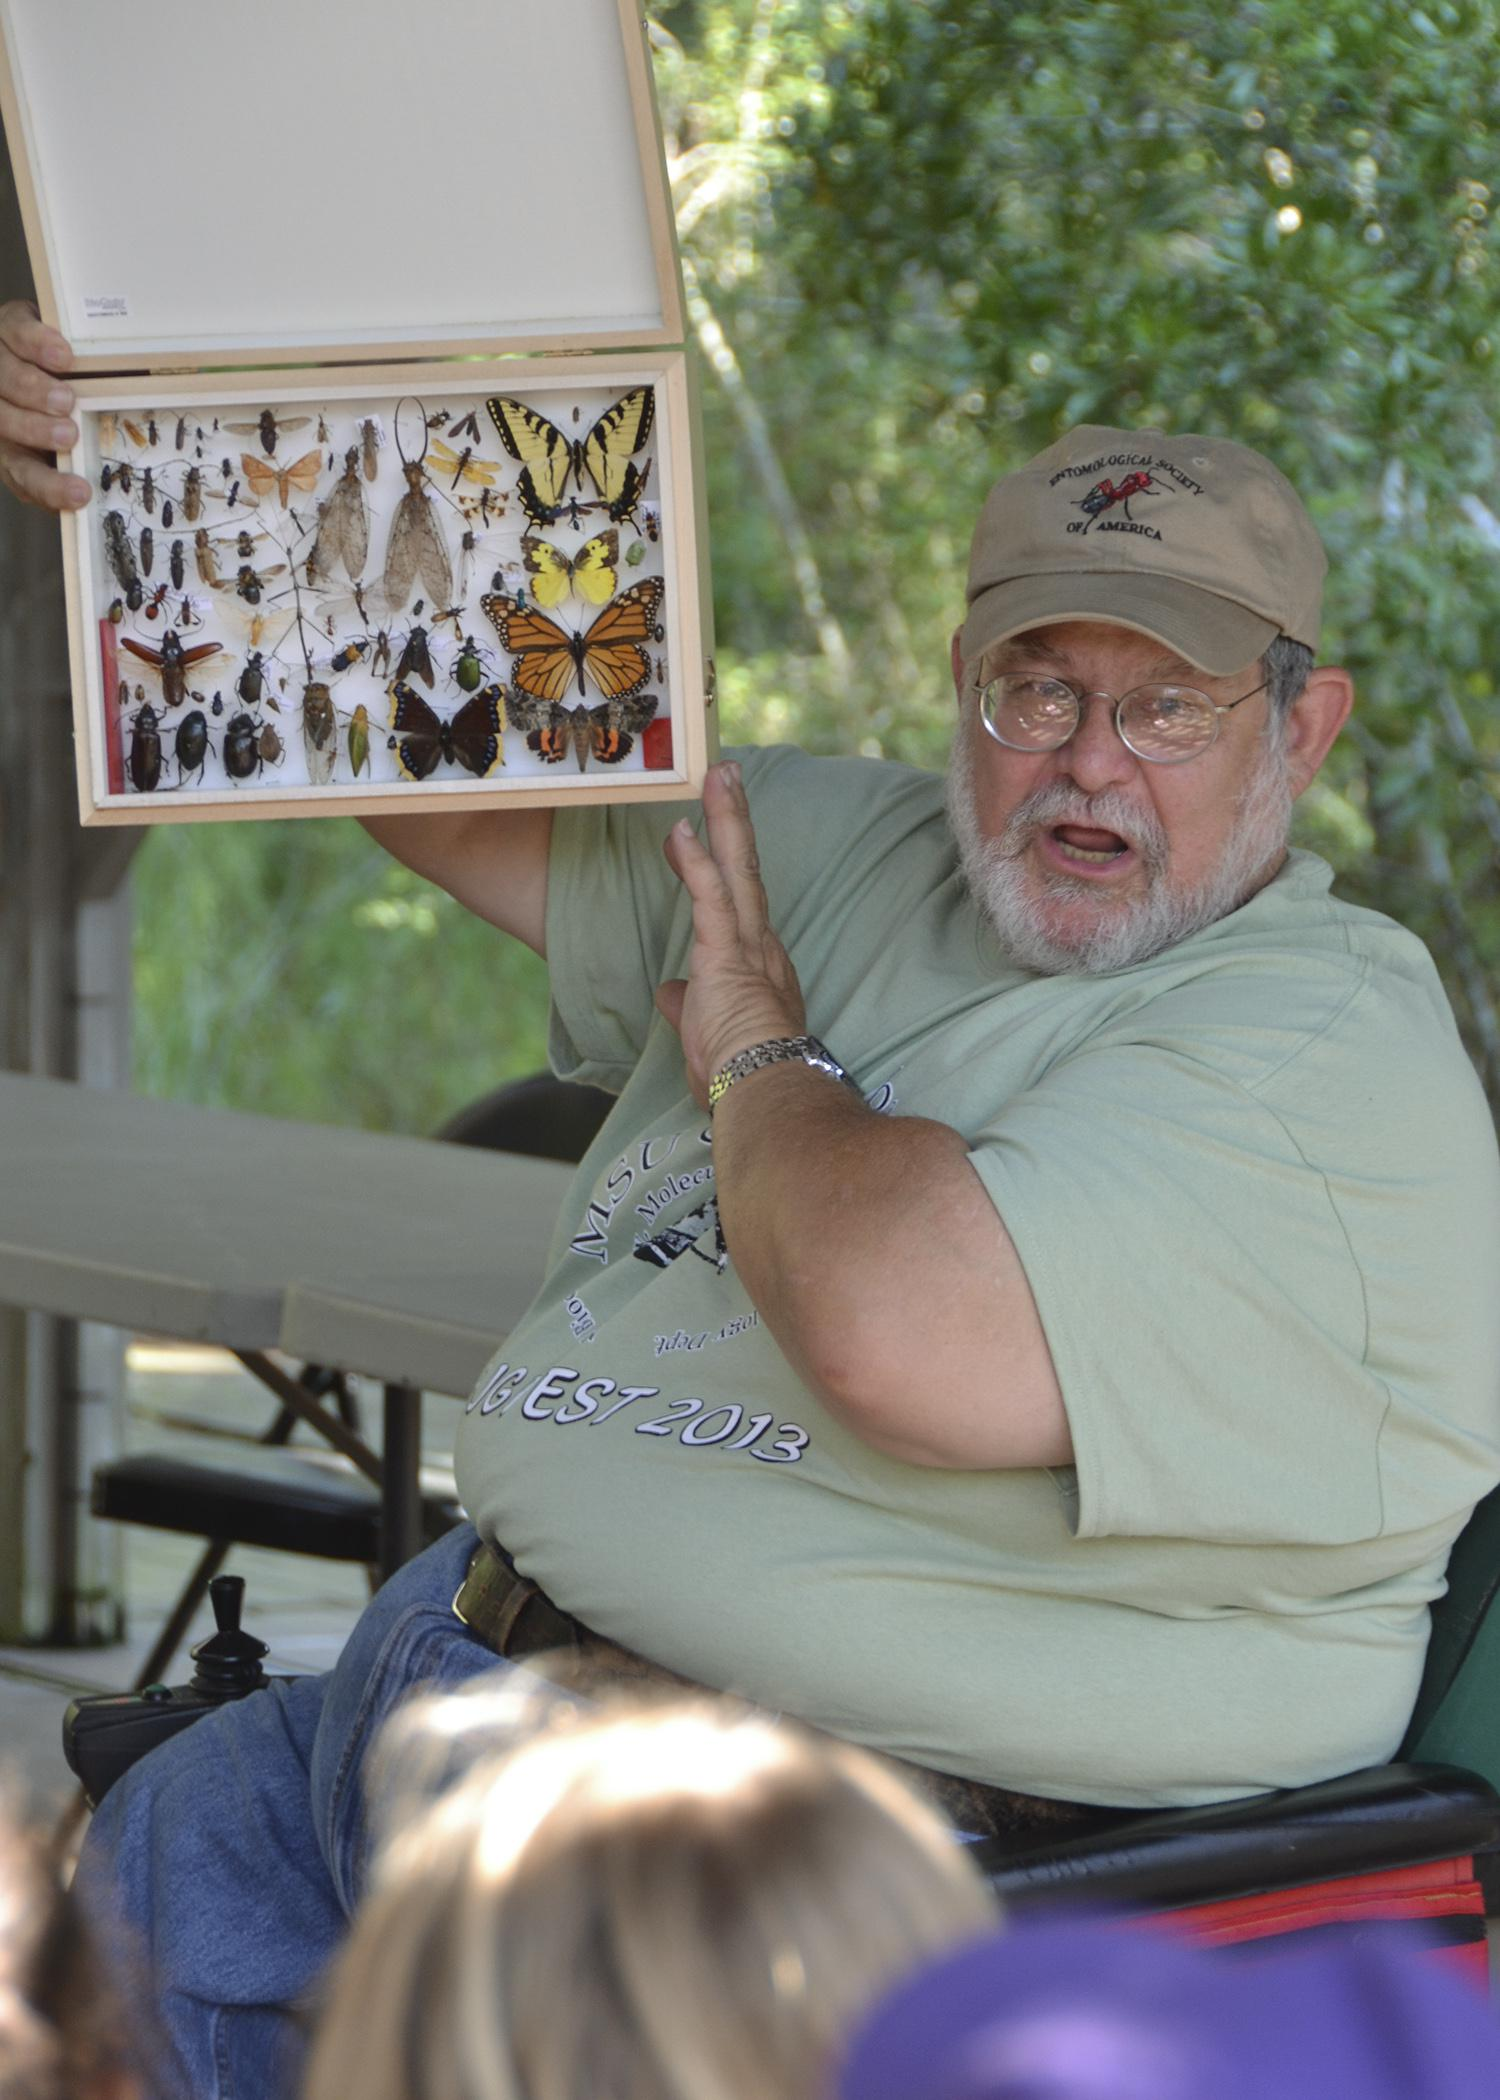 John Guyton, Mississippi State University Extension entomology specialist, shares an insect collection with a school group on Sept. 27, 2013, during Bugfest at the Crosby Arboretum in Picayune. Participants in this year's two-day event can take part in insect collection and identification, tours of the pitcher plant bog, tree identification hikes, a beekeeping tutorial and more. (Photo by MSU Ag Communications/Susan Collins-Smith)